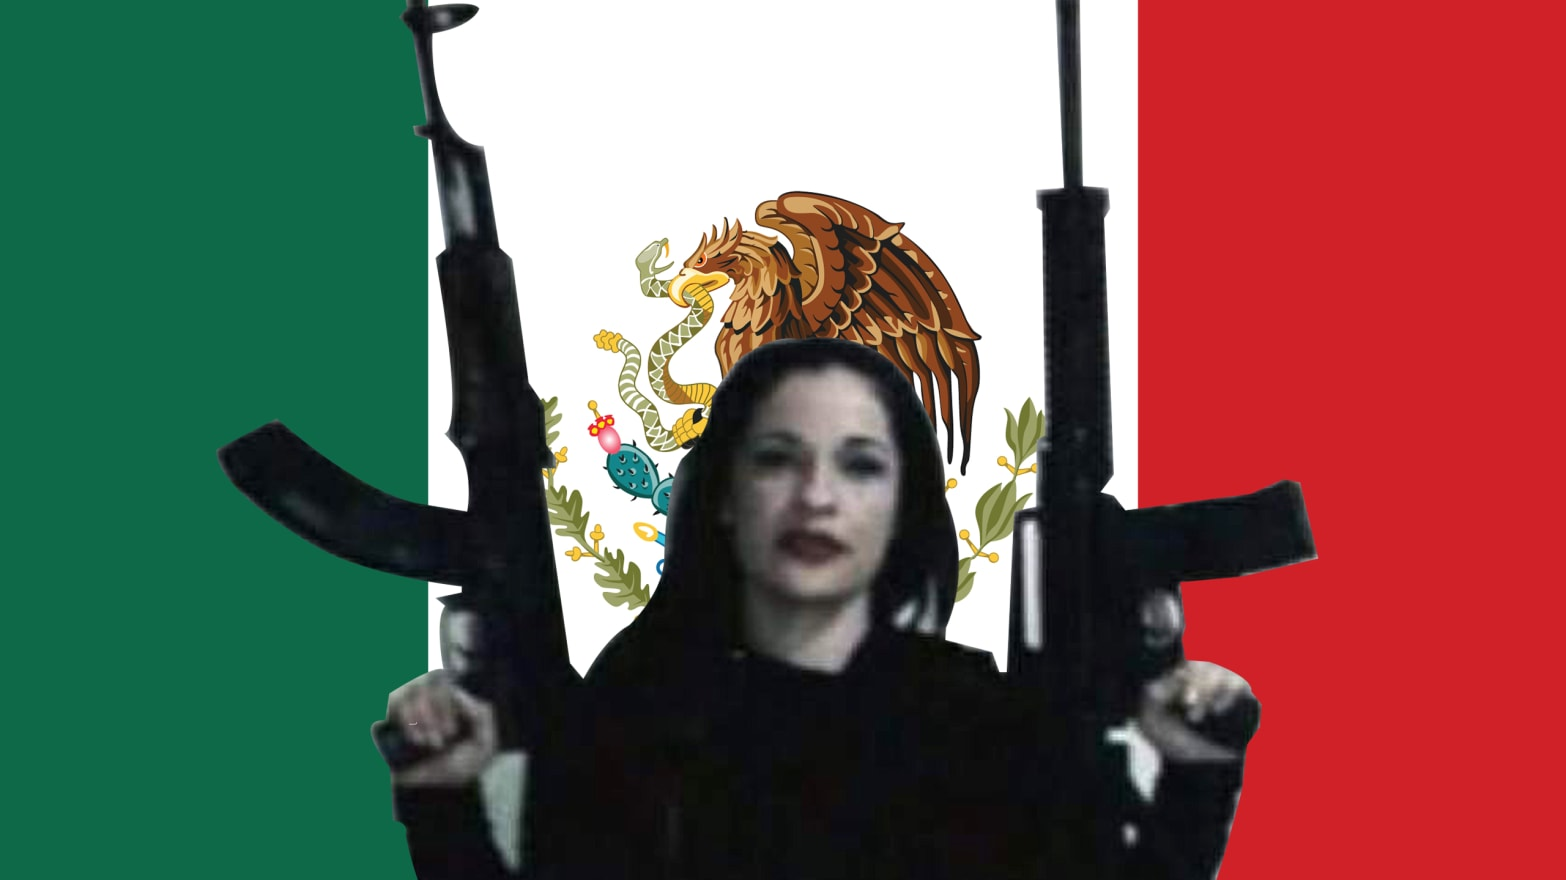 She Was the Cartel's Top Assassin  And Then Her Boyfriend Turned Her In